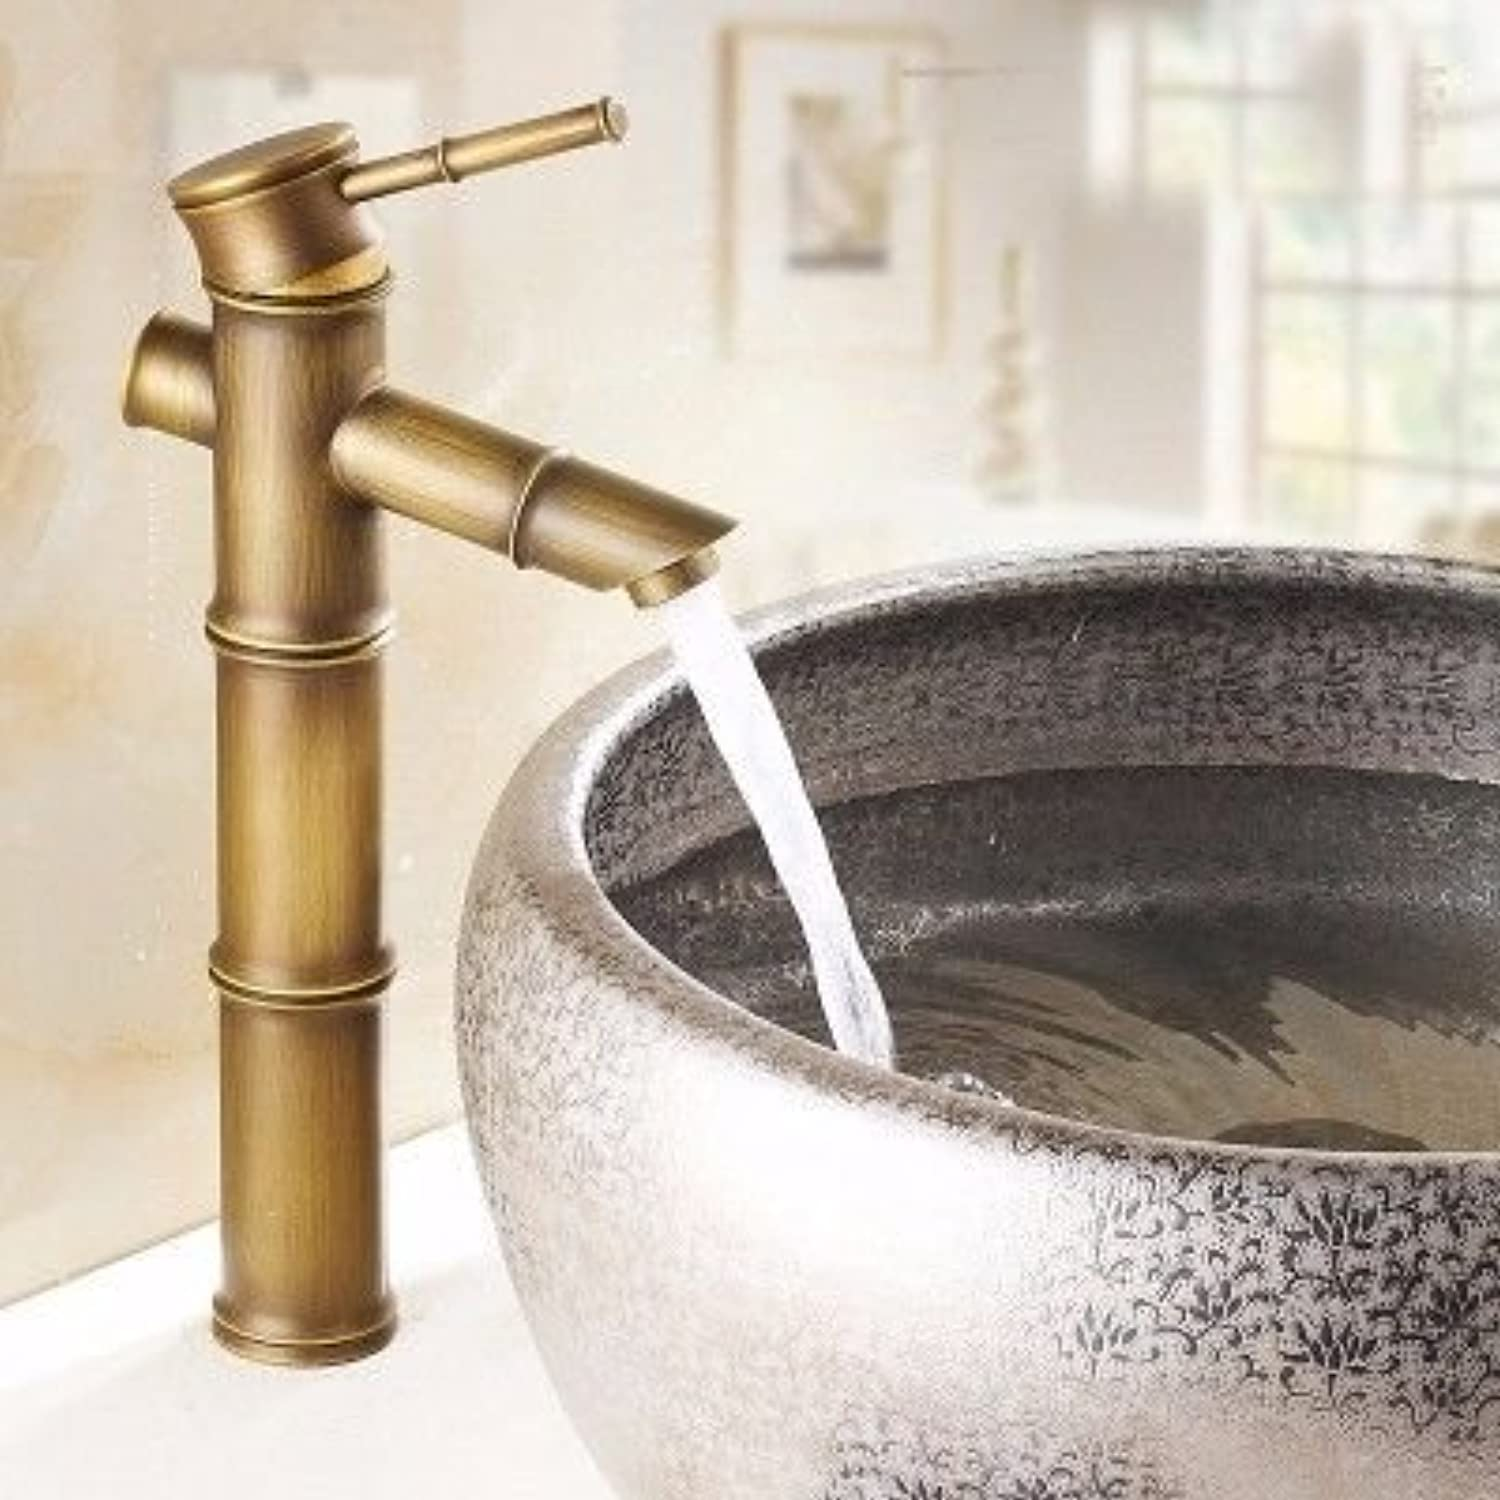 ETERNAL QUALITY Bathroom Sink Basin Tap Brass Mixer Tap Washroom Mixer Faucet Basin faucet antique bamboo wash basins and cold water slot blender xksj Kitchen Sink Taps